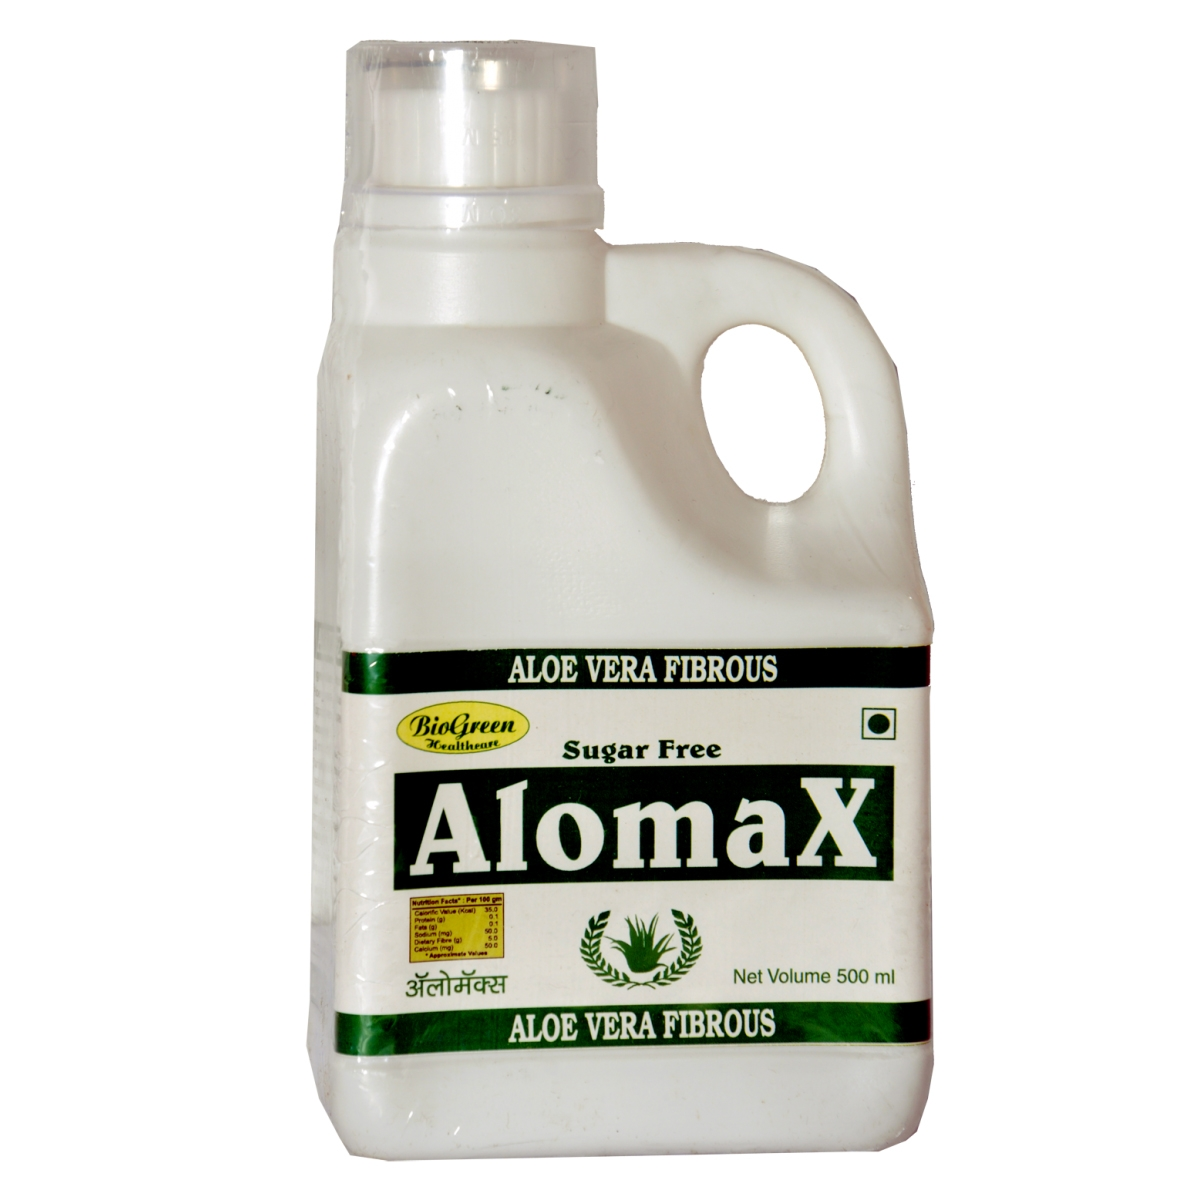 AlomaX In Sirmaur